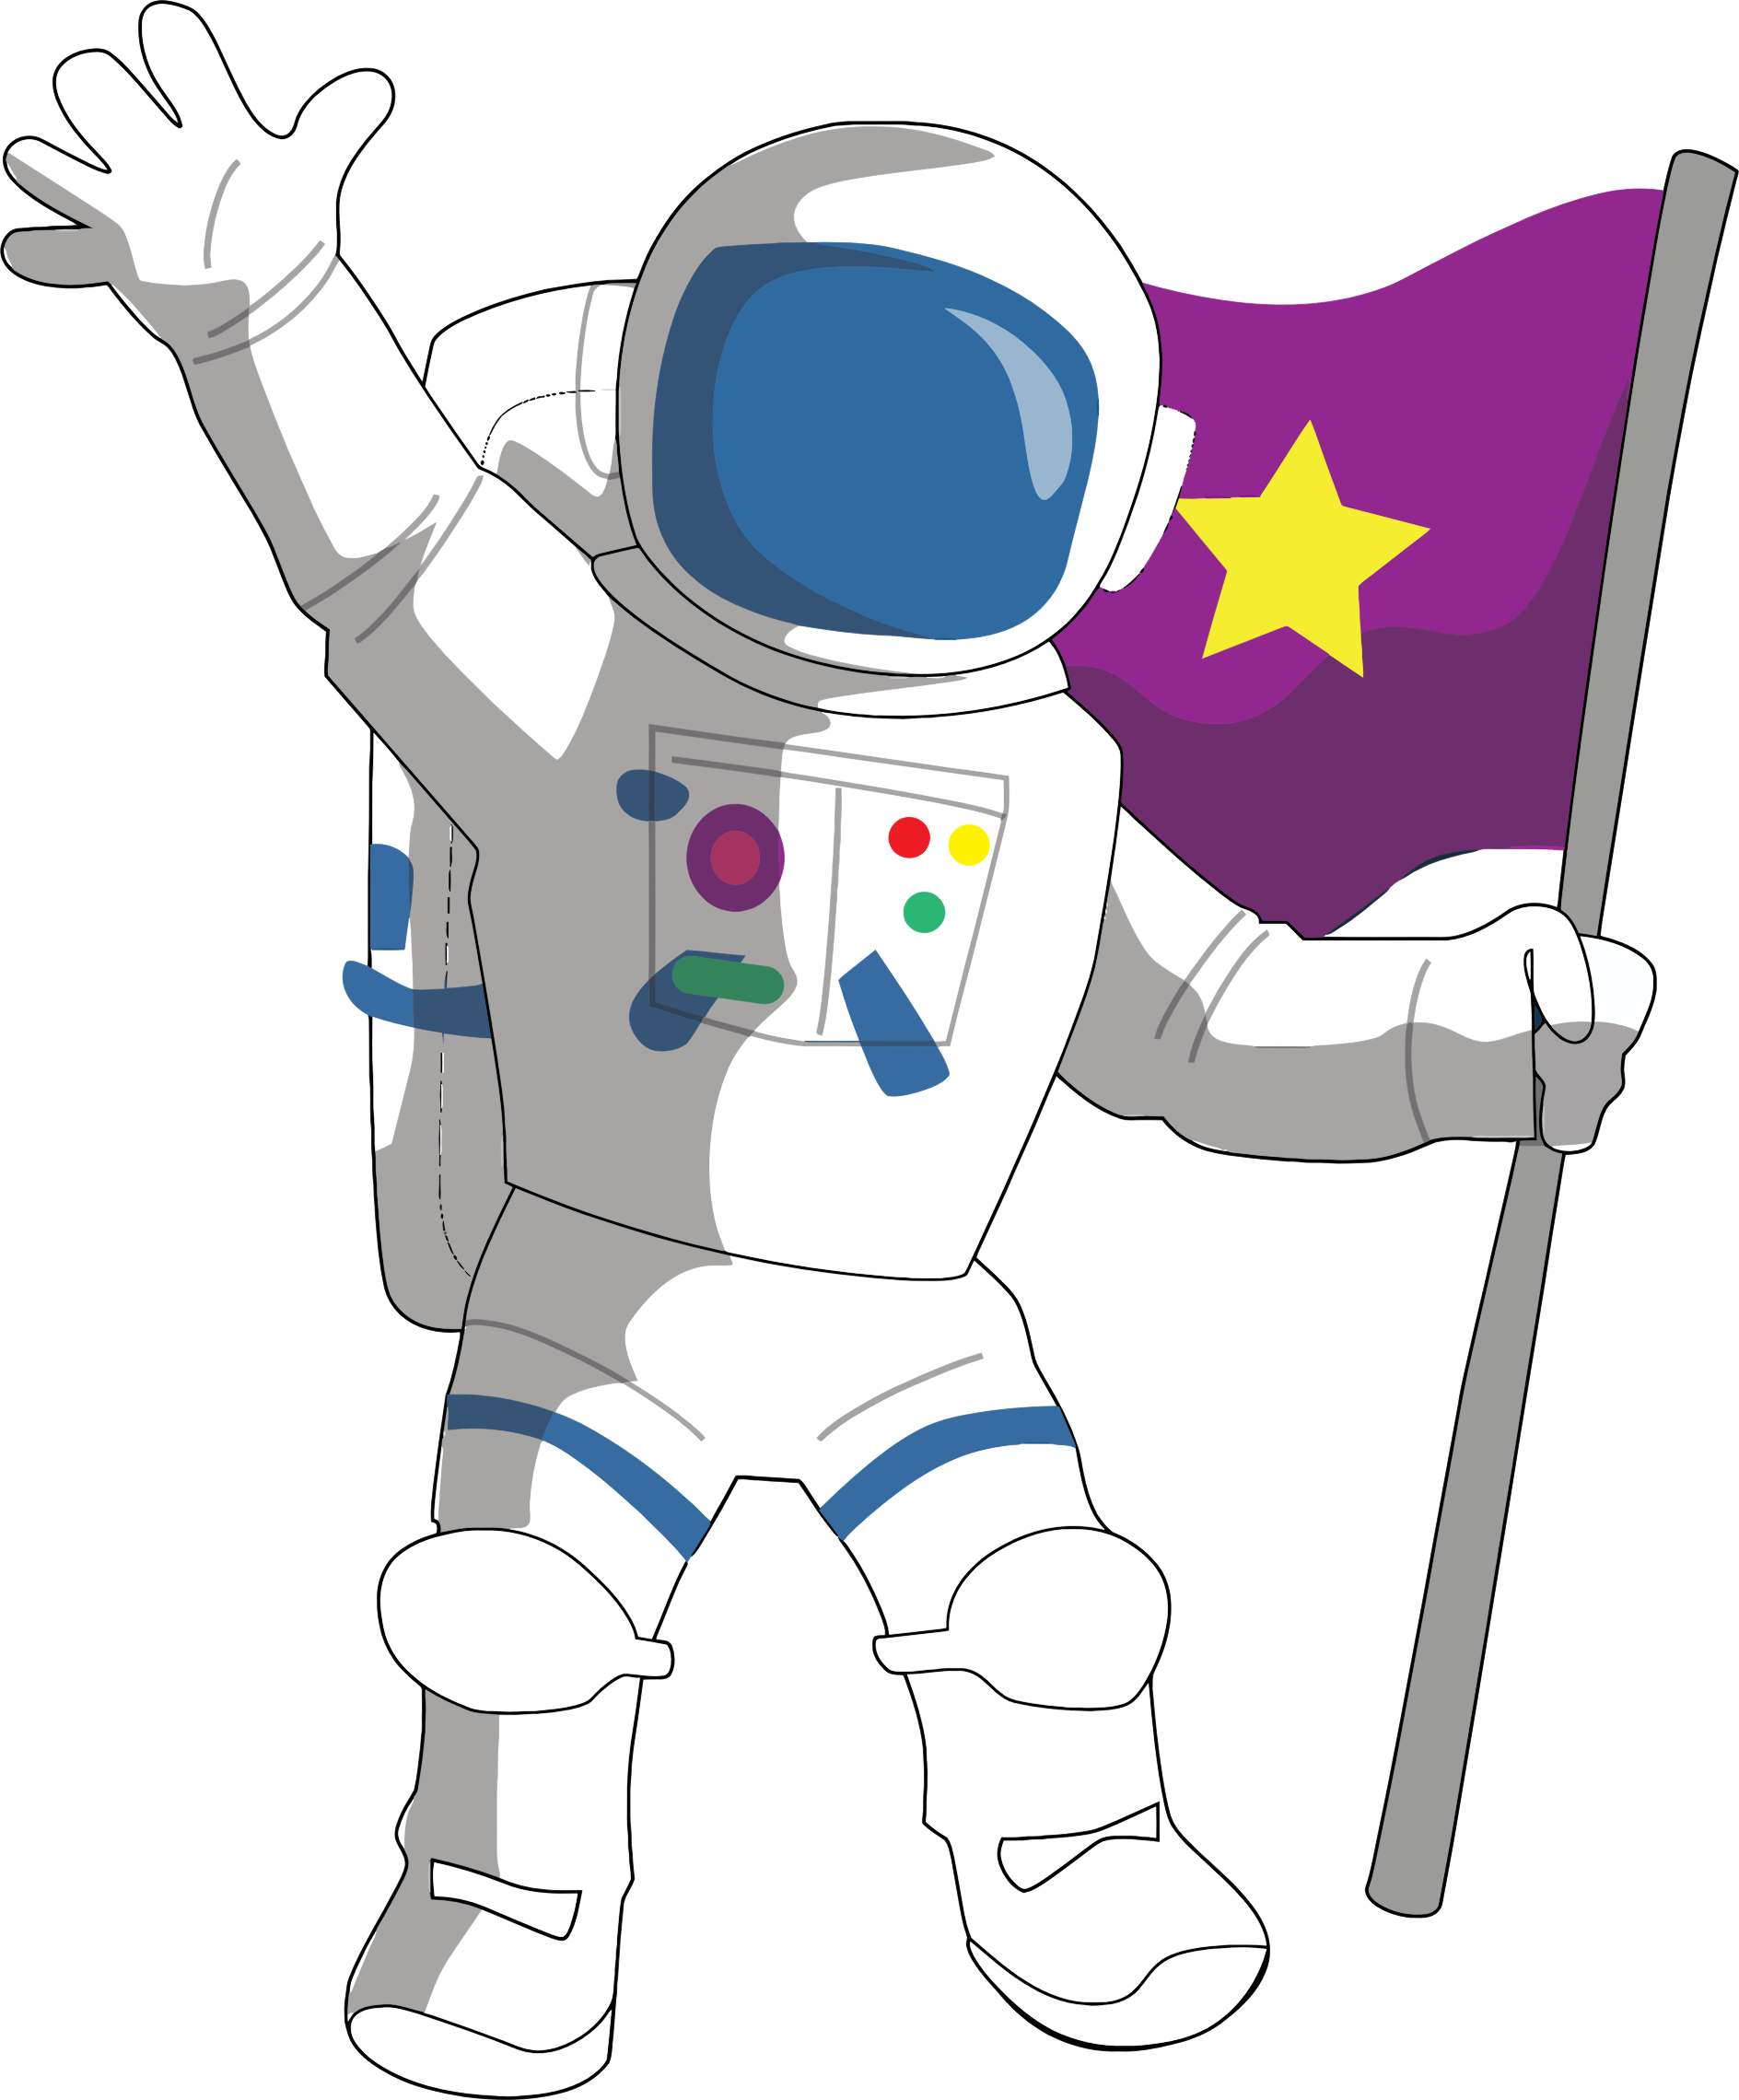 Technology clipart space technology. Astronaut png images free